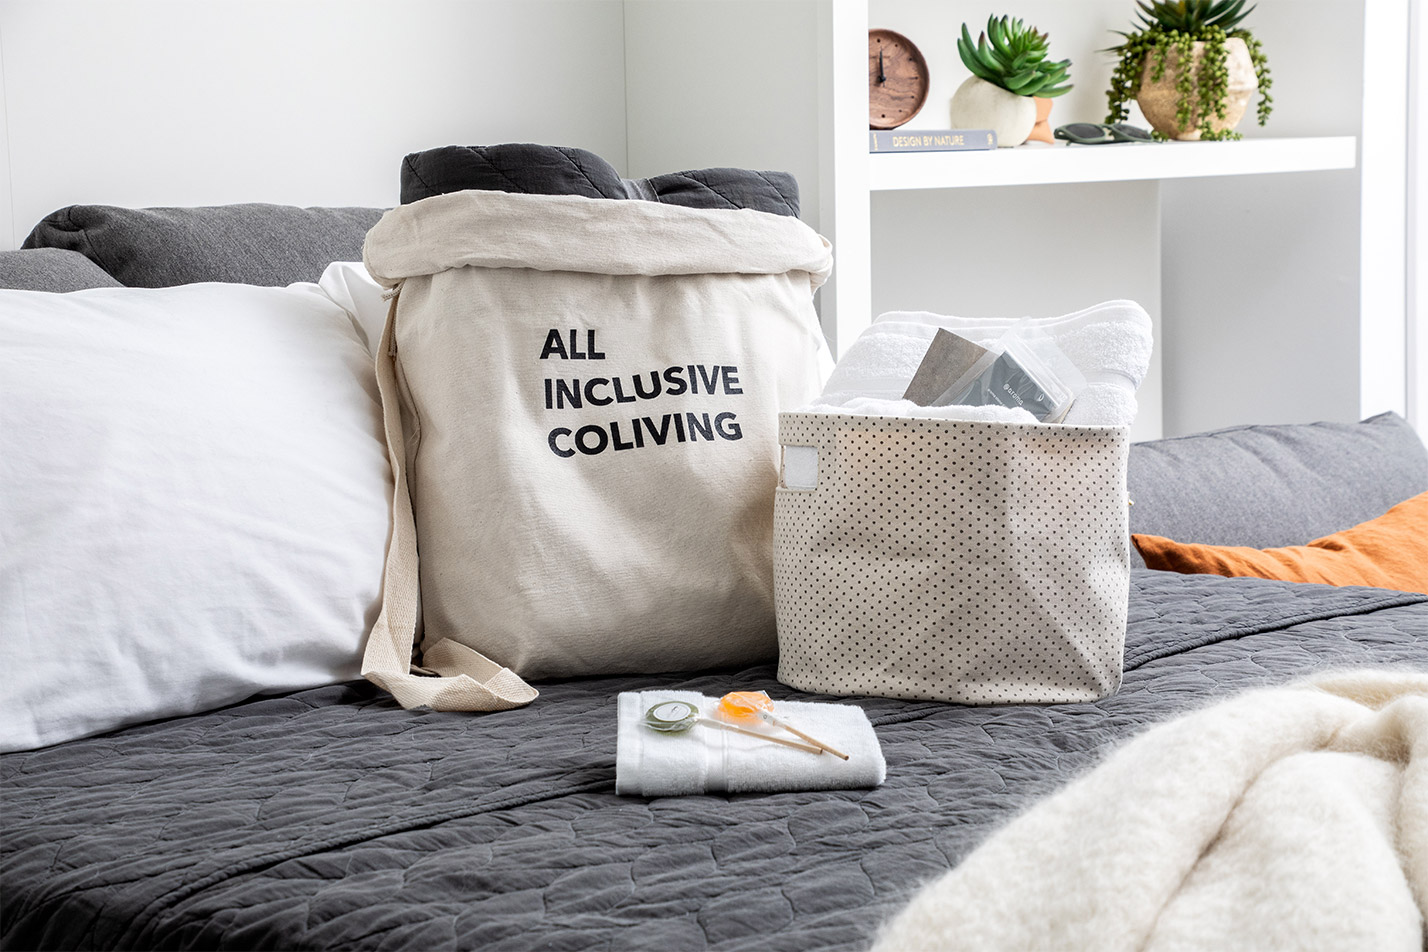 Welcome gift set on bed including towels, lollipops, and 'All inclusive coliving' Ollie tote.